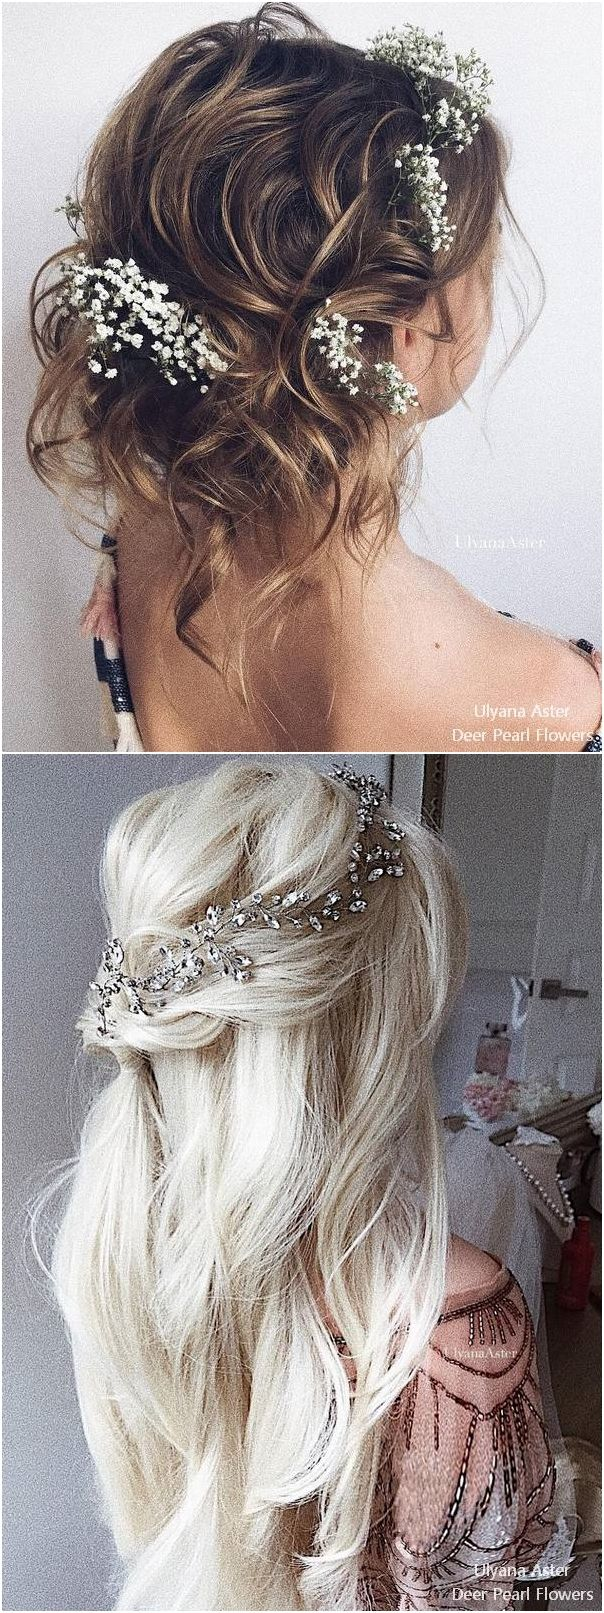 Top 25 Ulyana Aster Wedding Hairstyles #weddings #weddinghairstyles #dpf #deerpe...